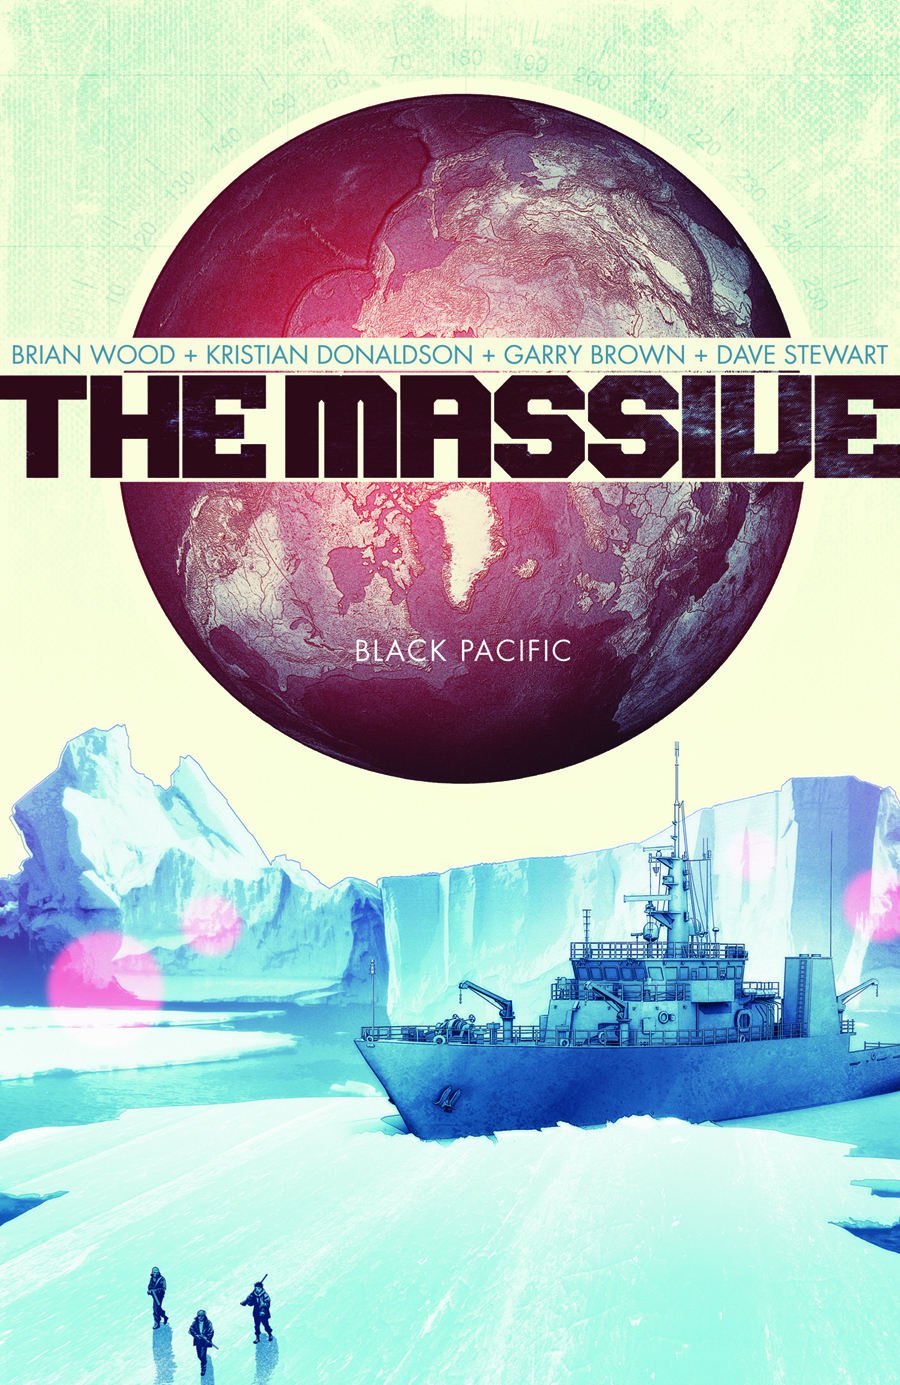 MASSIVE TP VOL 01 BLACK PACIFIC